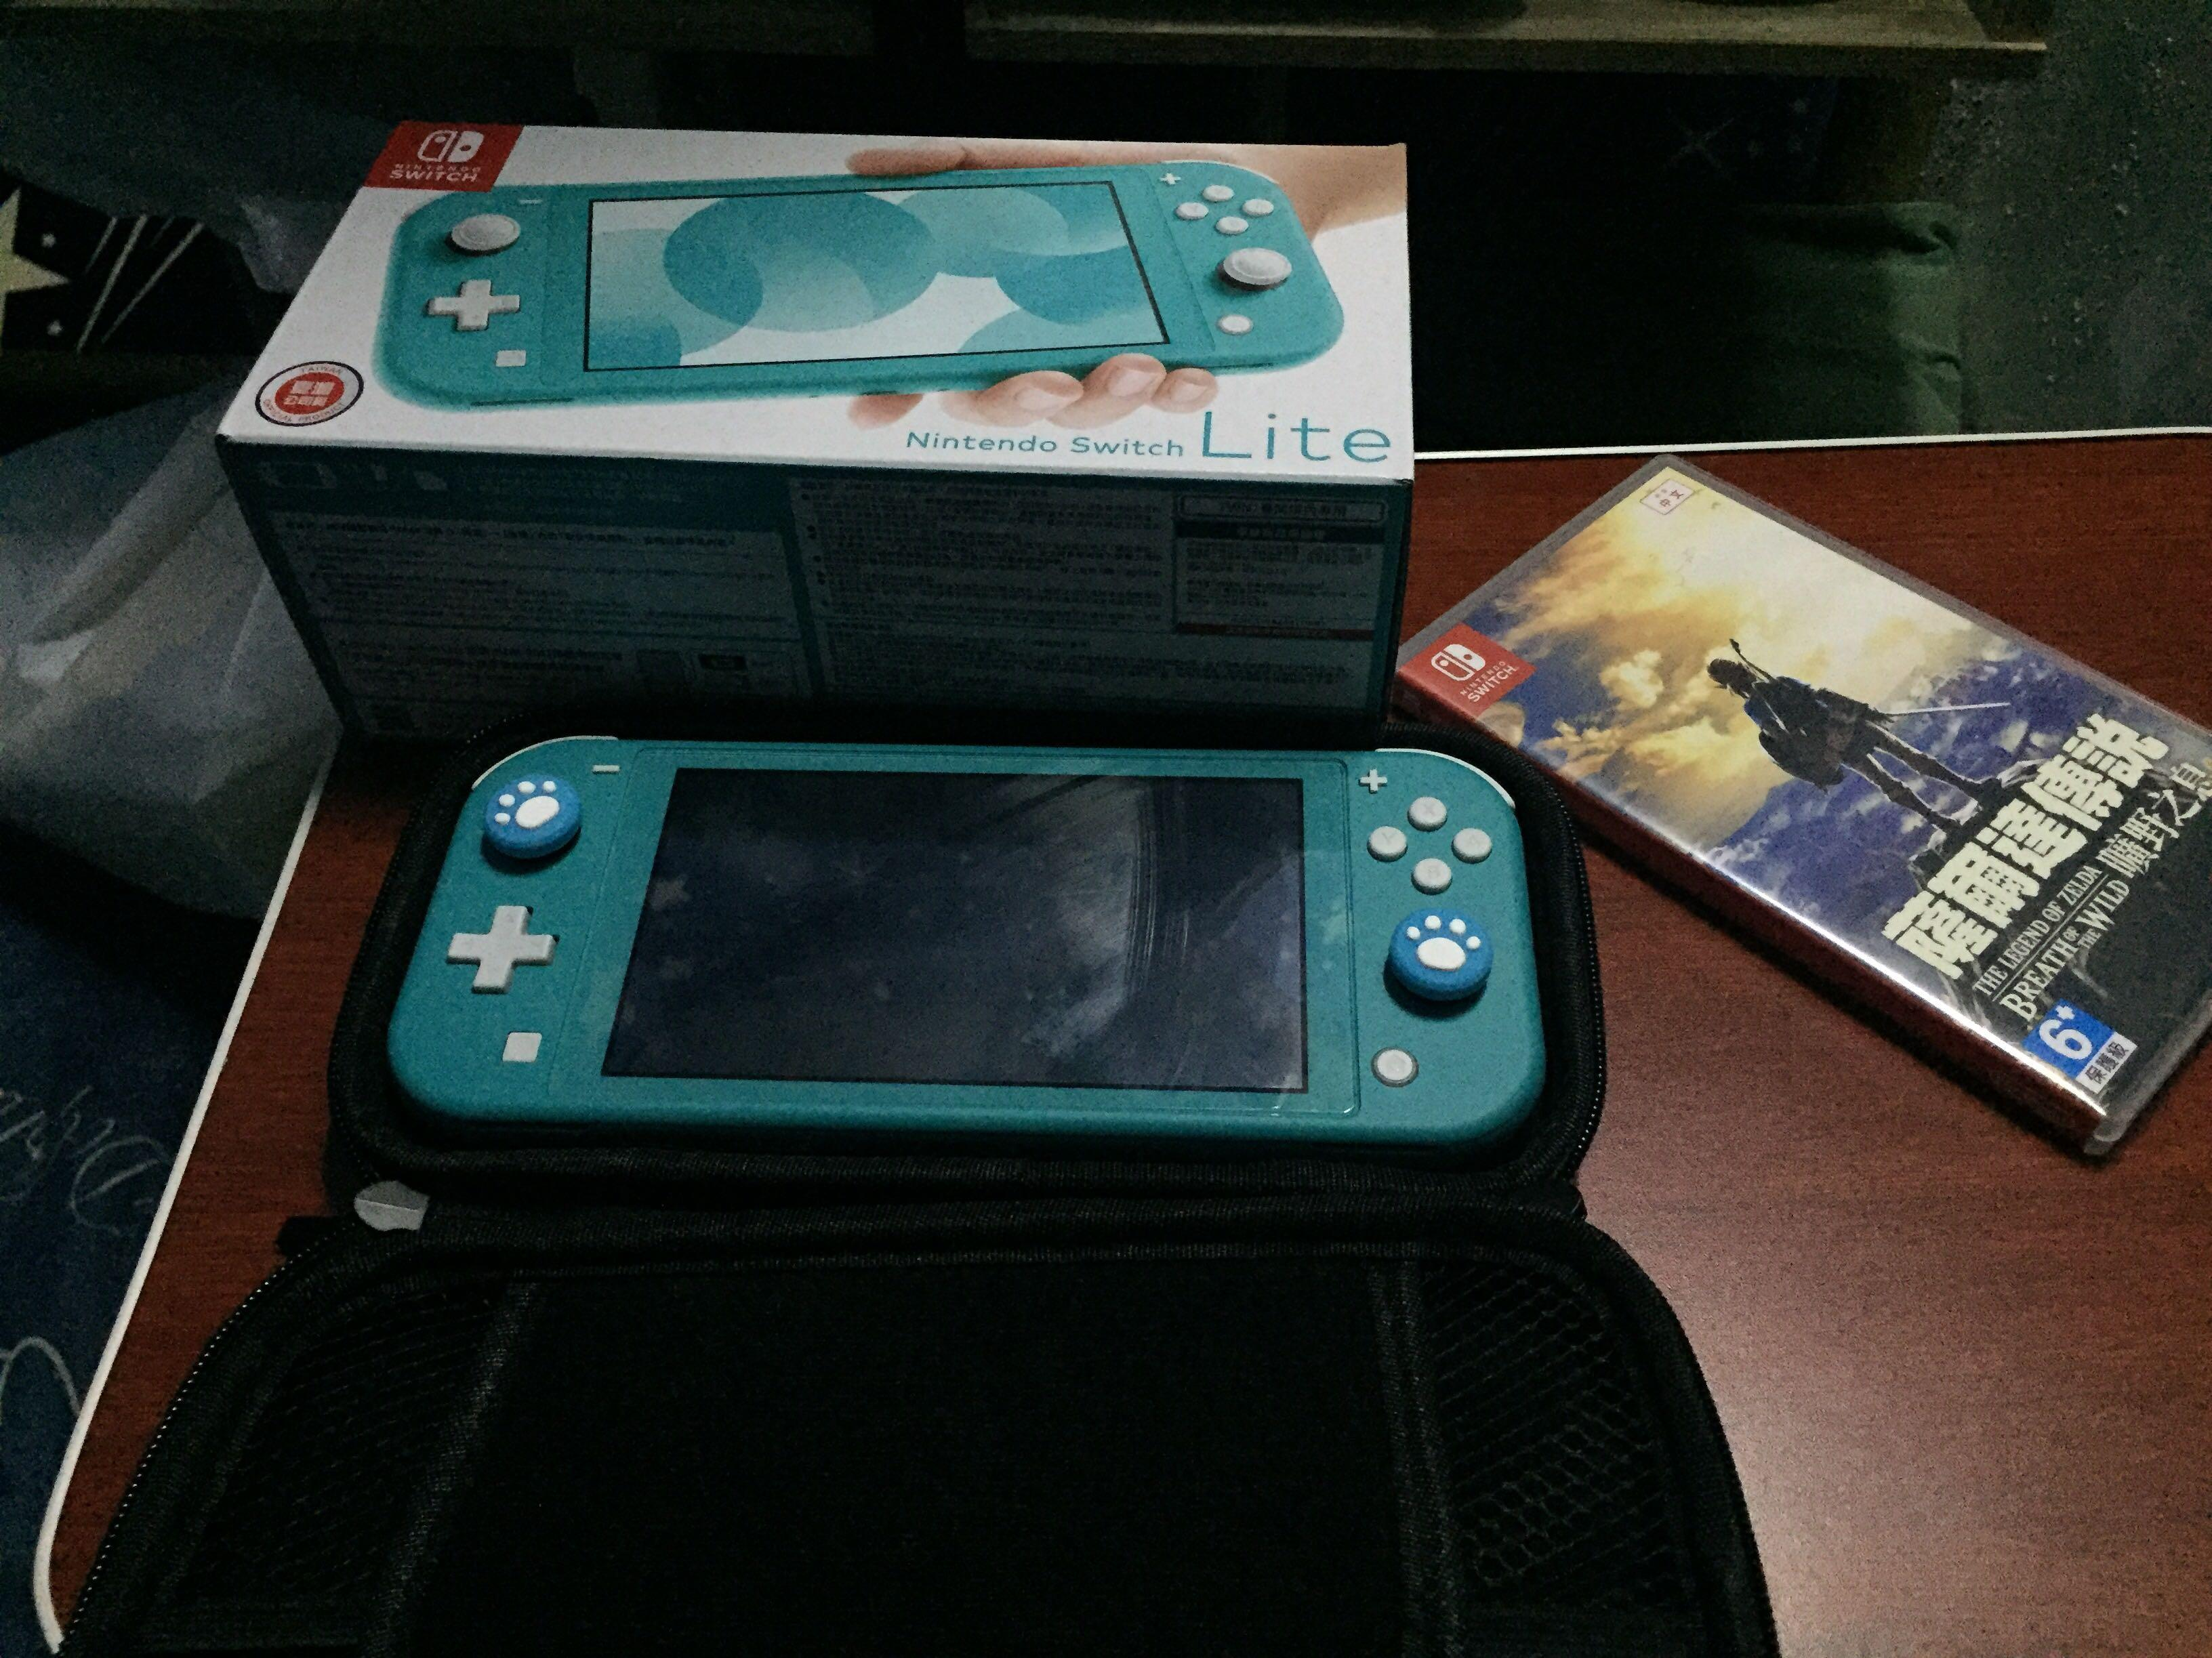 Nintendo switch lite Good as new . No dents , no scratch, with the legend of Zelda breath of the wild game. With case still have box , charger and open for swapp item.